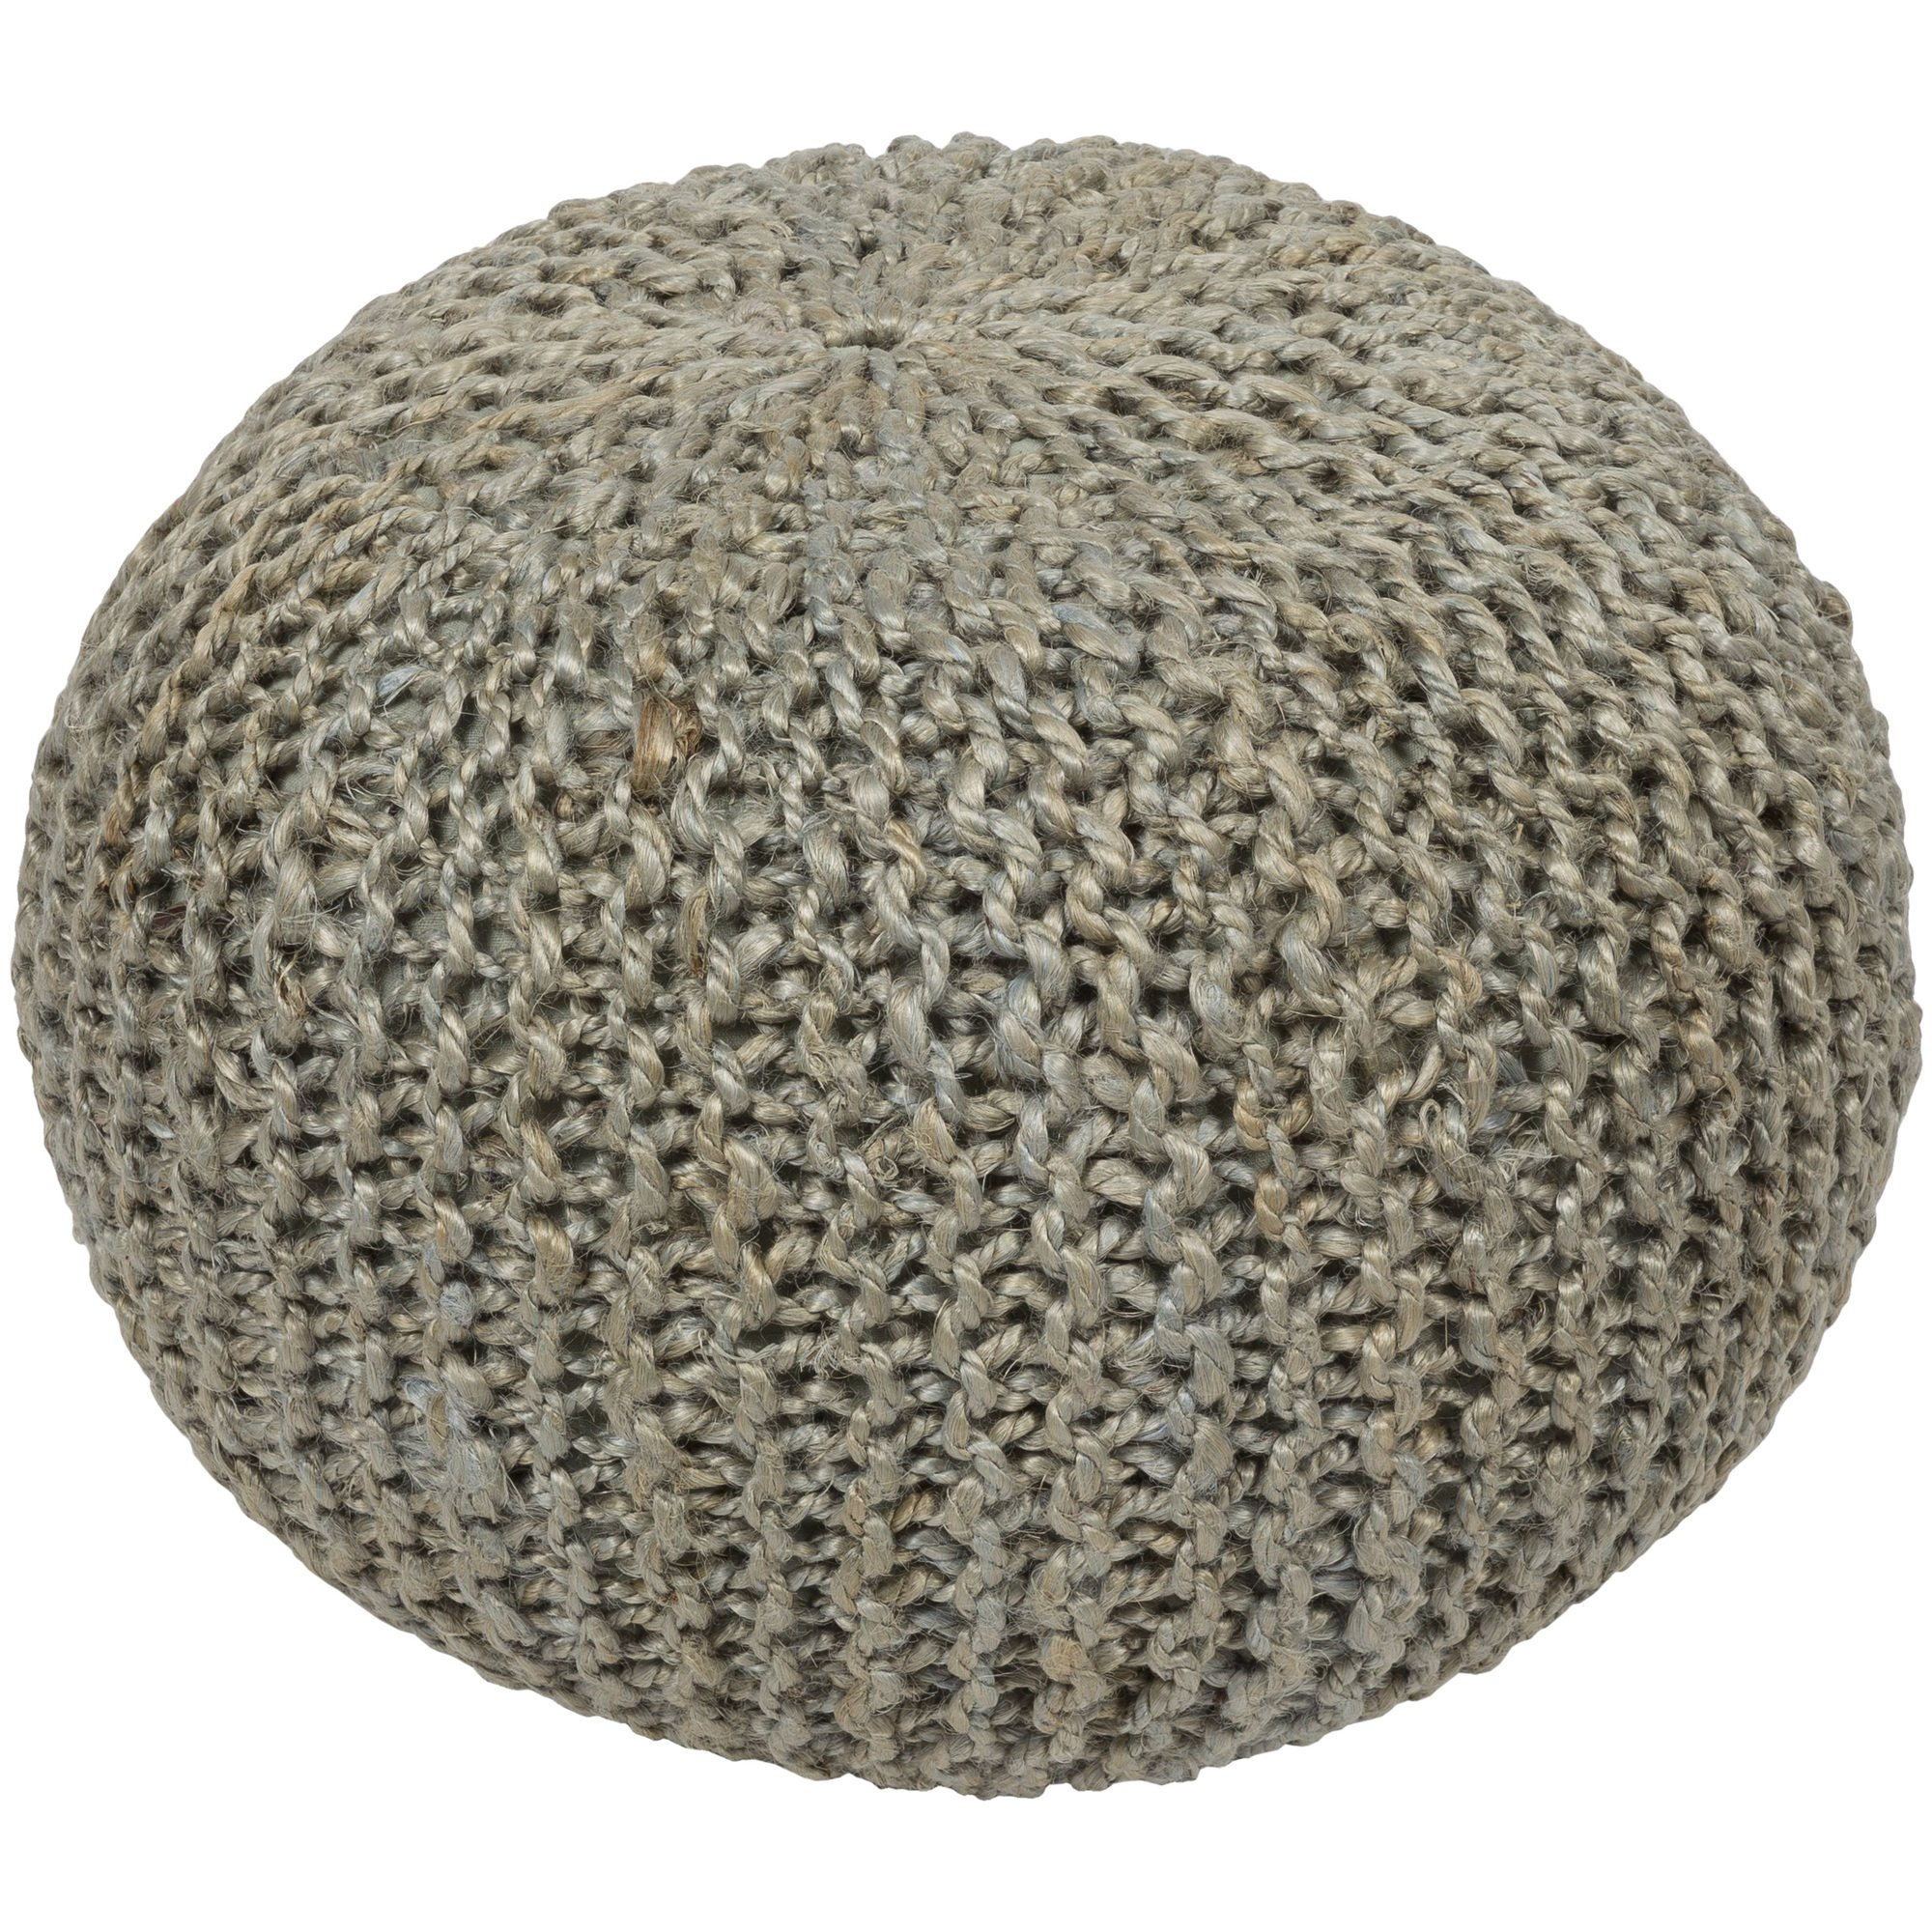 Surya BRPF-003 100-Percent Jute Pouf, 20-Inch by 20-Inch by 14-Inch, Light Gray